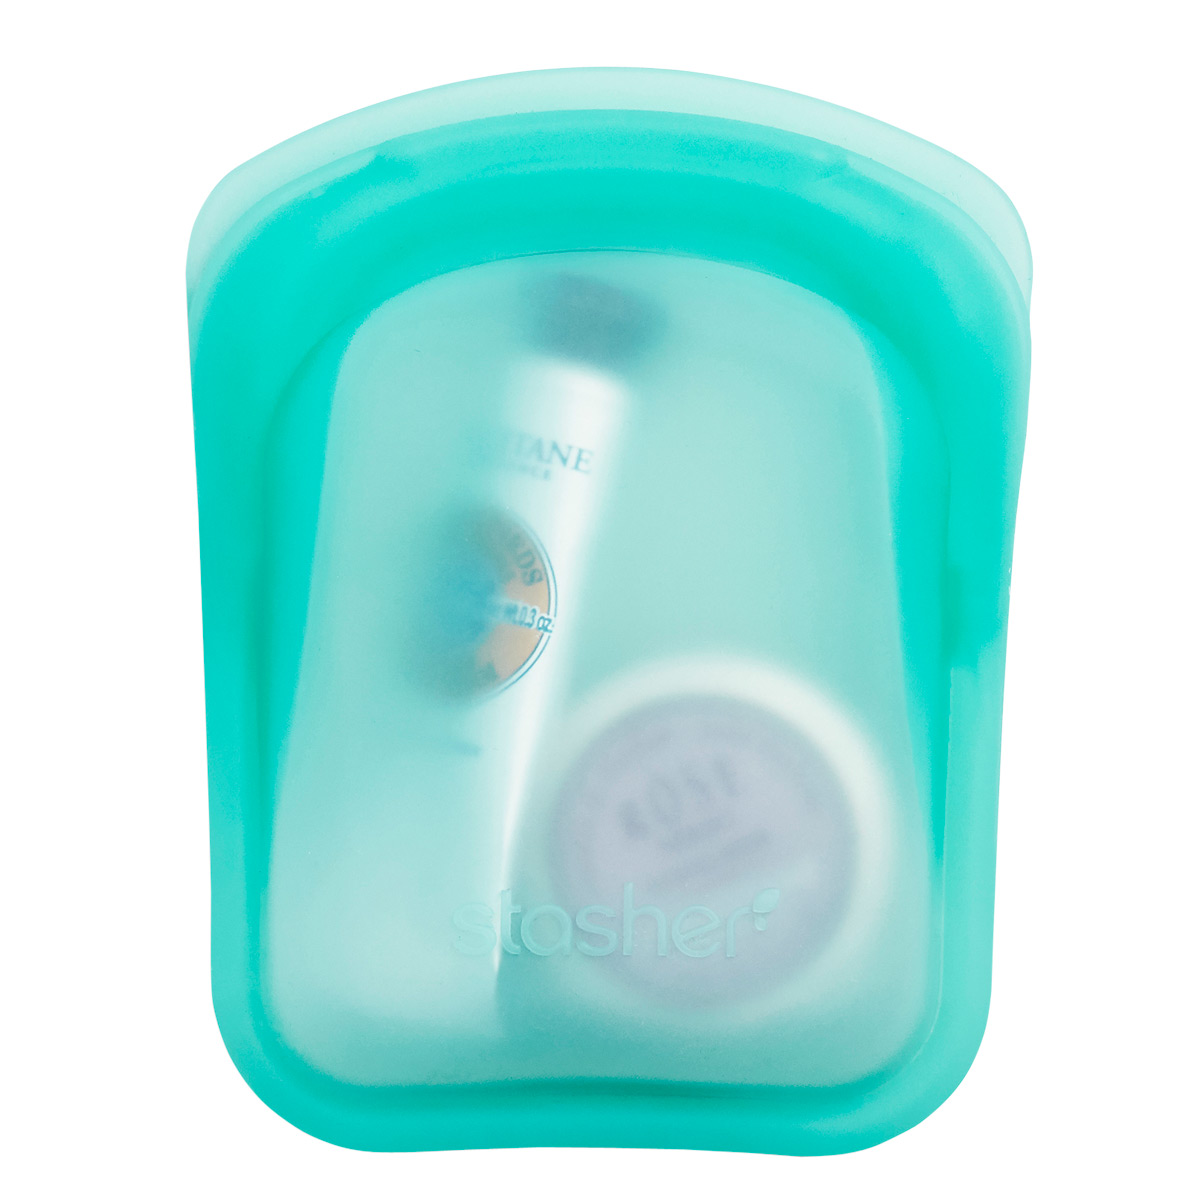 Stasher Clear/Aqua Silicone Pocket-Size Reusable Bag Pkg/2